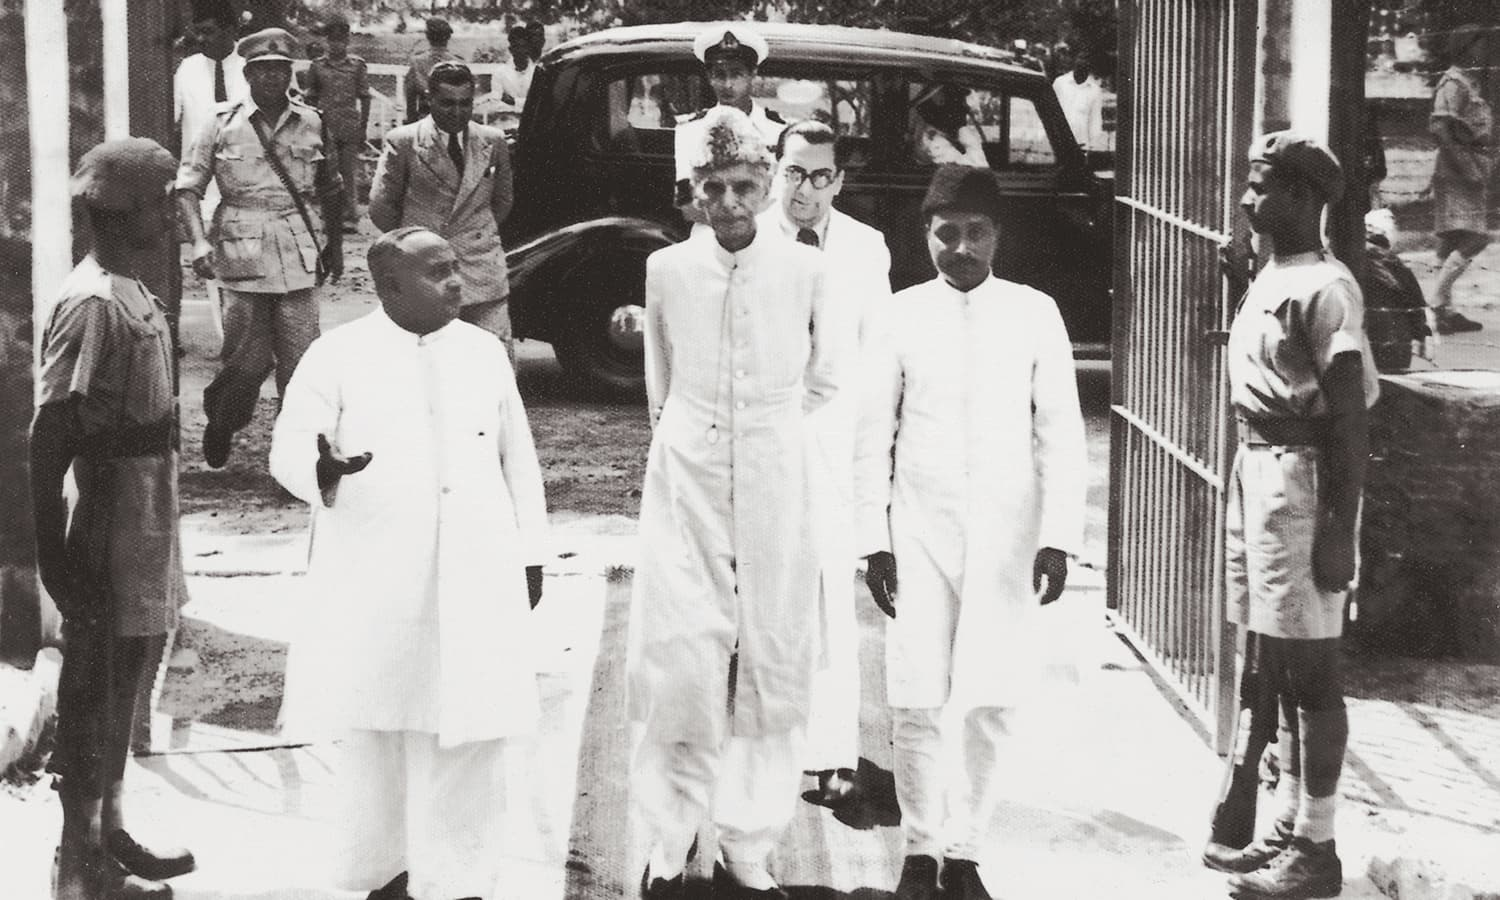 Quaid-i-Azam Mohammad Ali Jinnah with Khawaja Nazimuddin during the former's visit to Dhaka in April, 1948. | Photo: The Press Information Department, Ministry of Information, Broadcasting & National Heritage, Islamabad (PID)